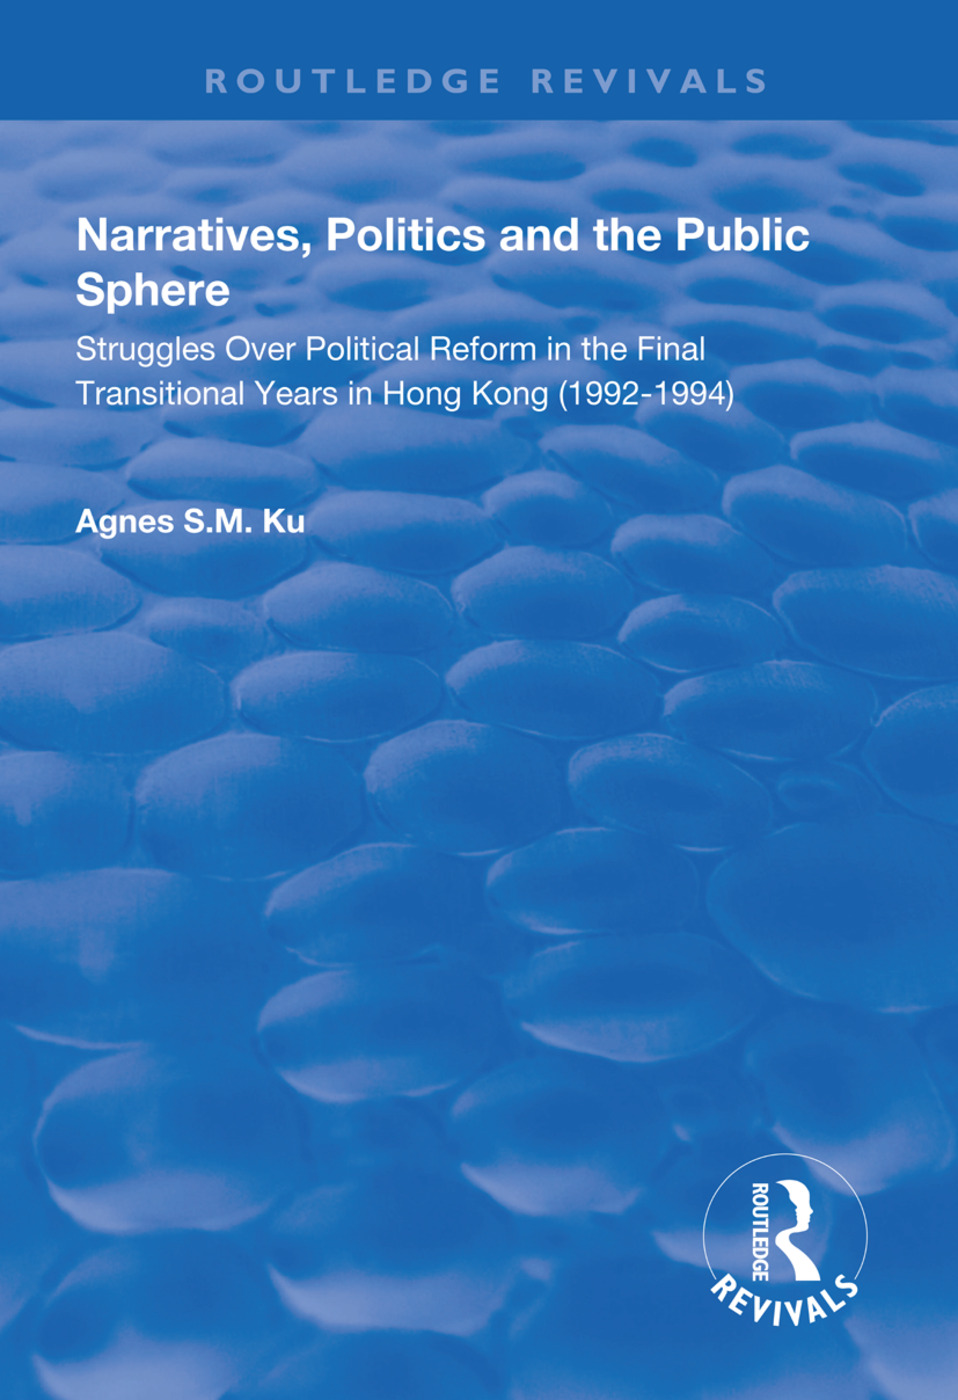 Theoretical Approaches to the Public Sphere